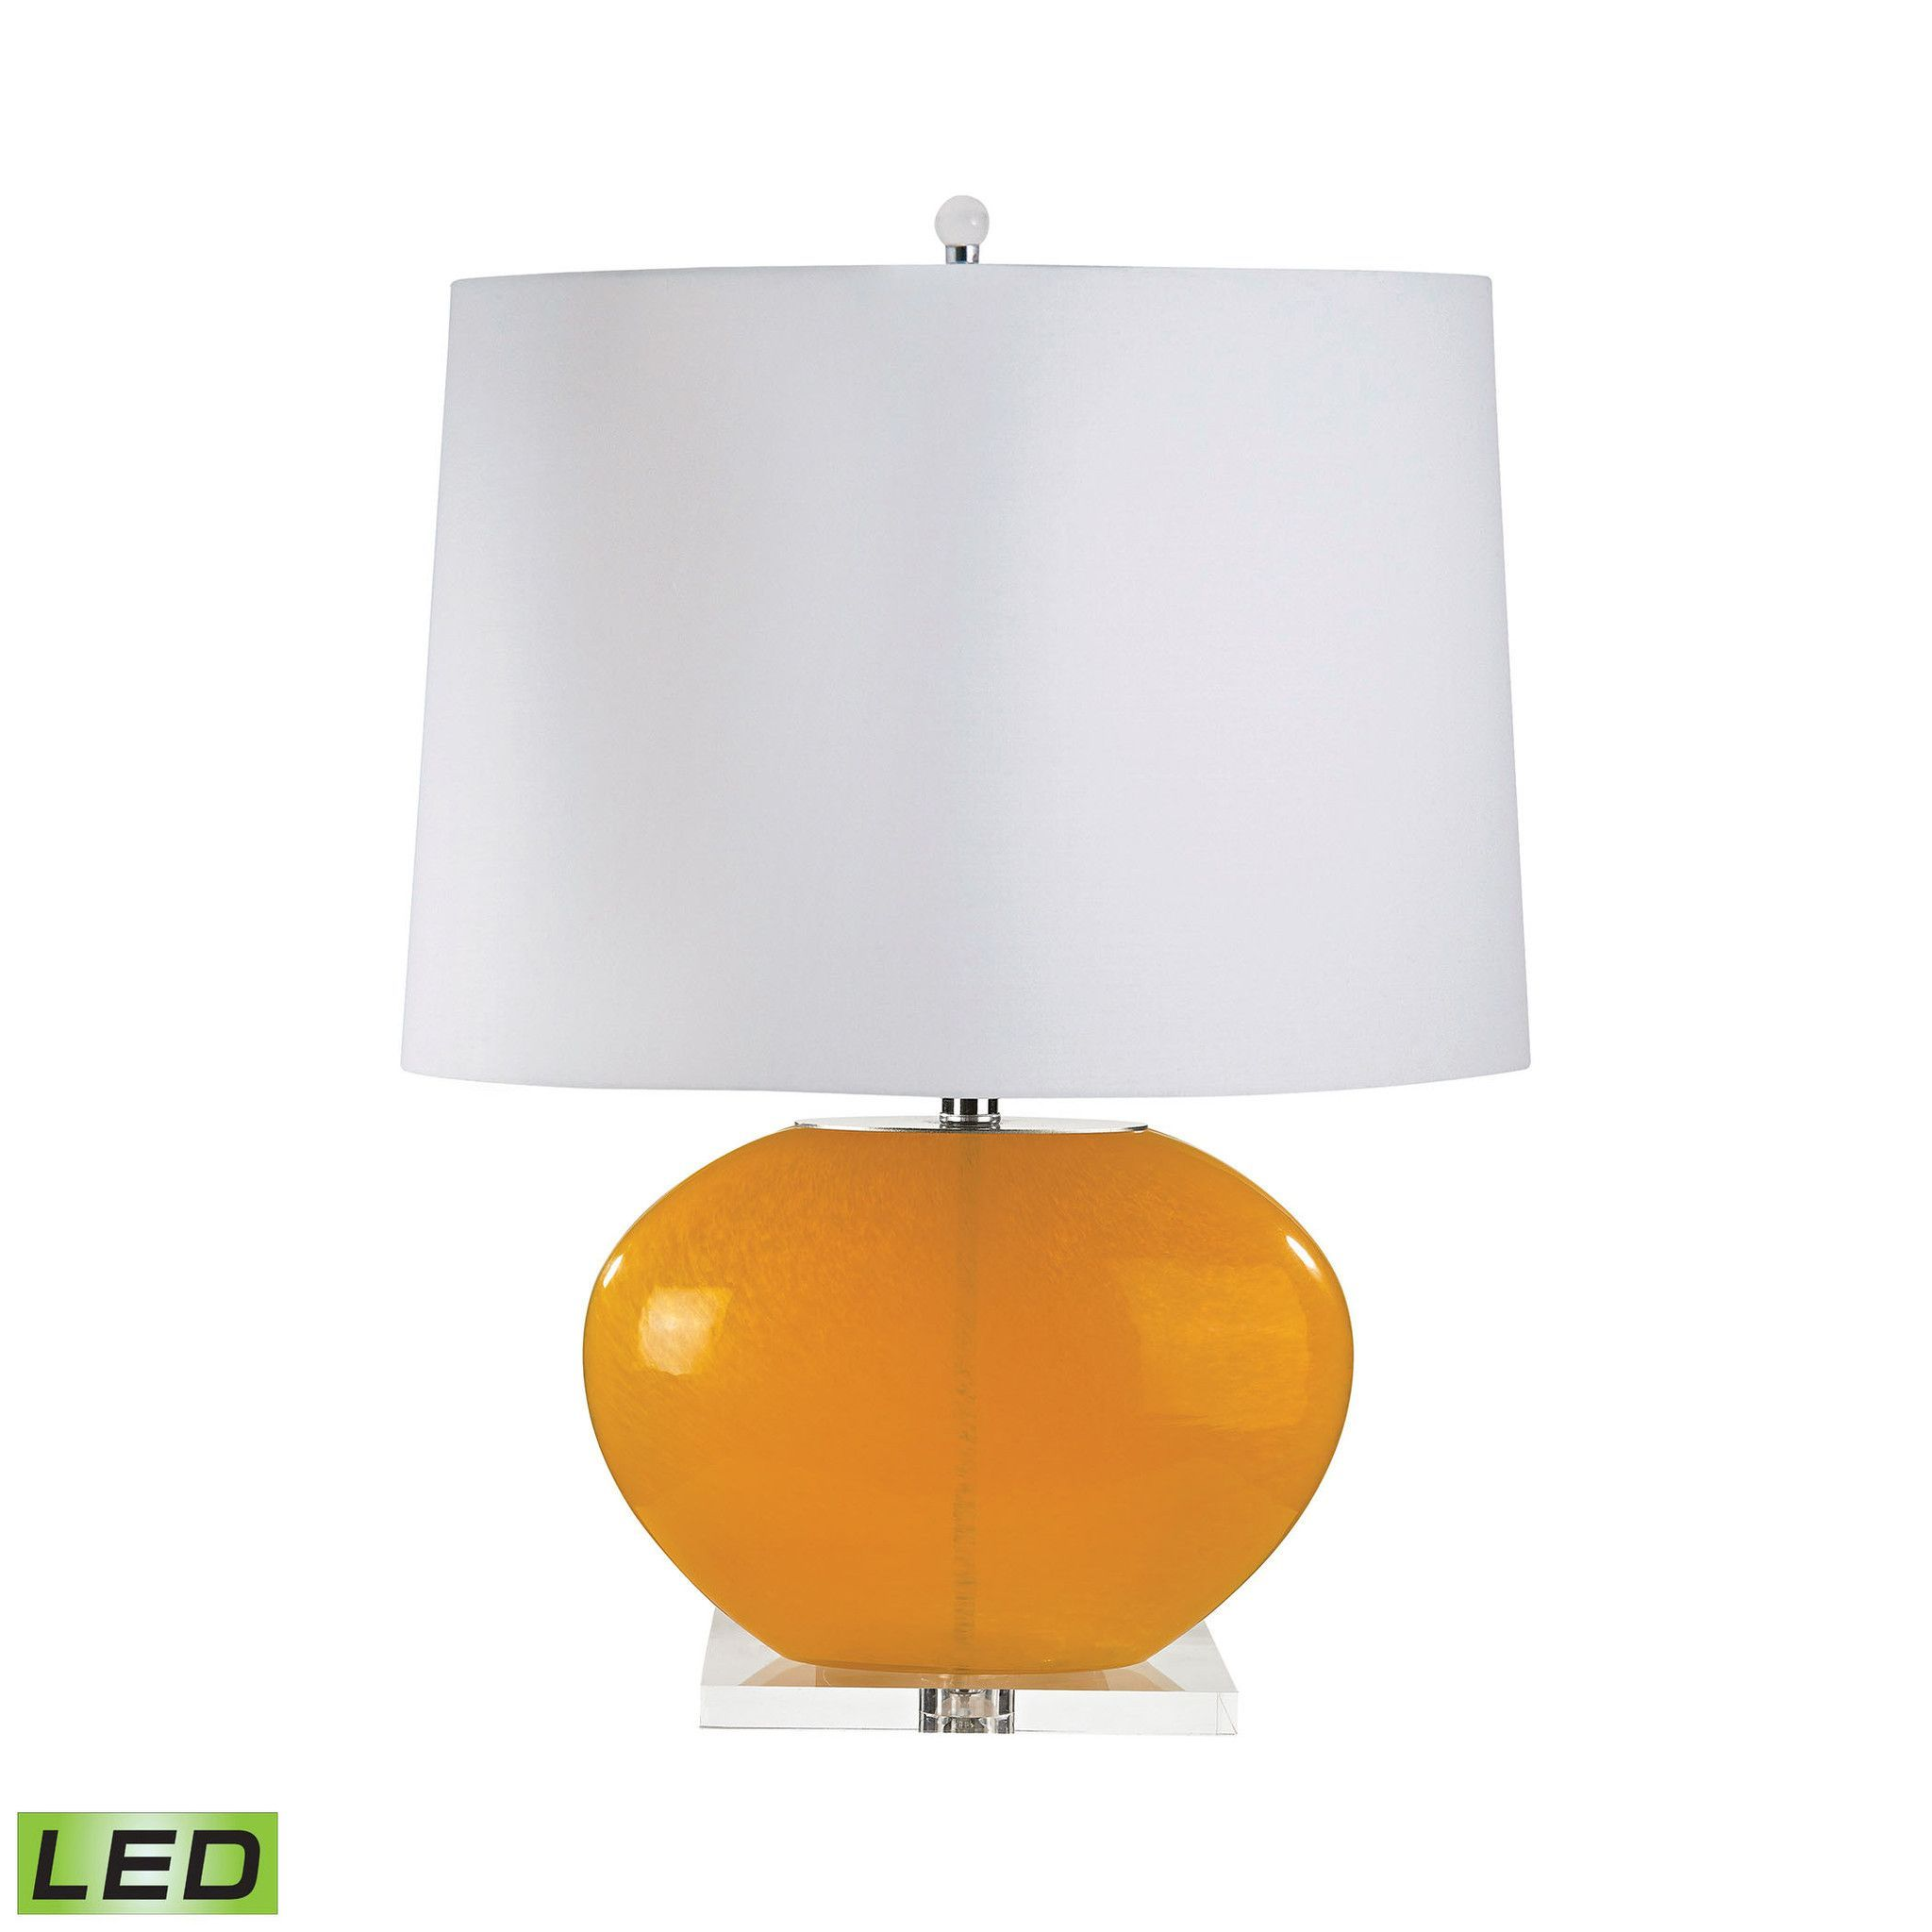 Lamp Works Blown Glass Oval LED Table Lamp In Orange - Set of 2 319-LED